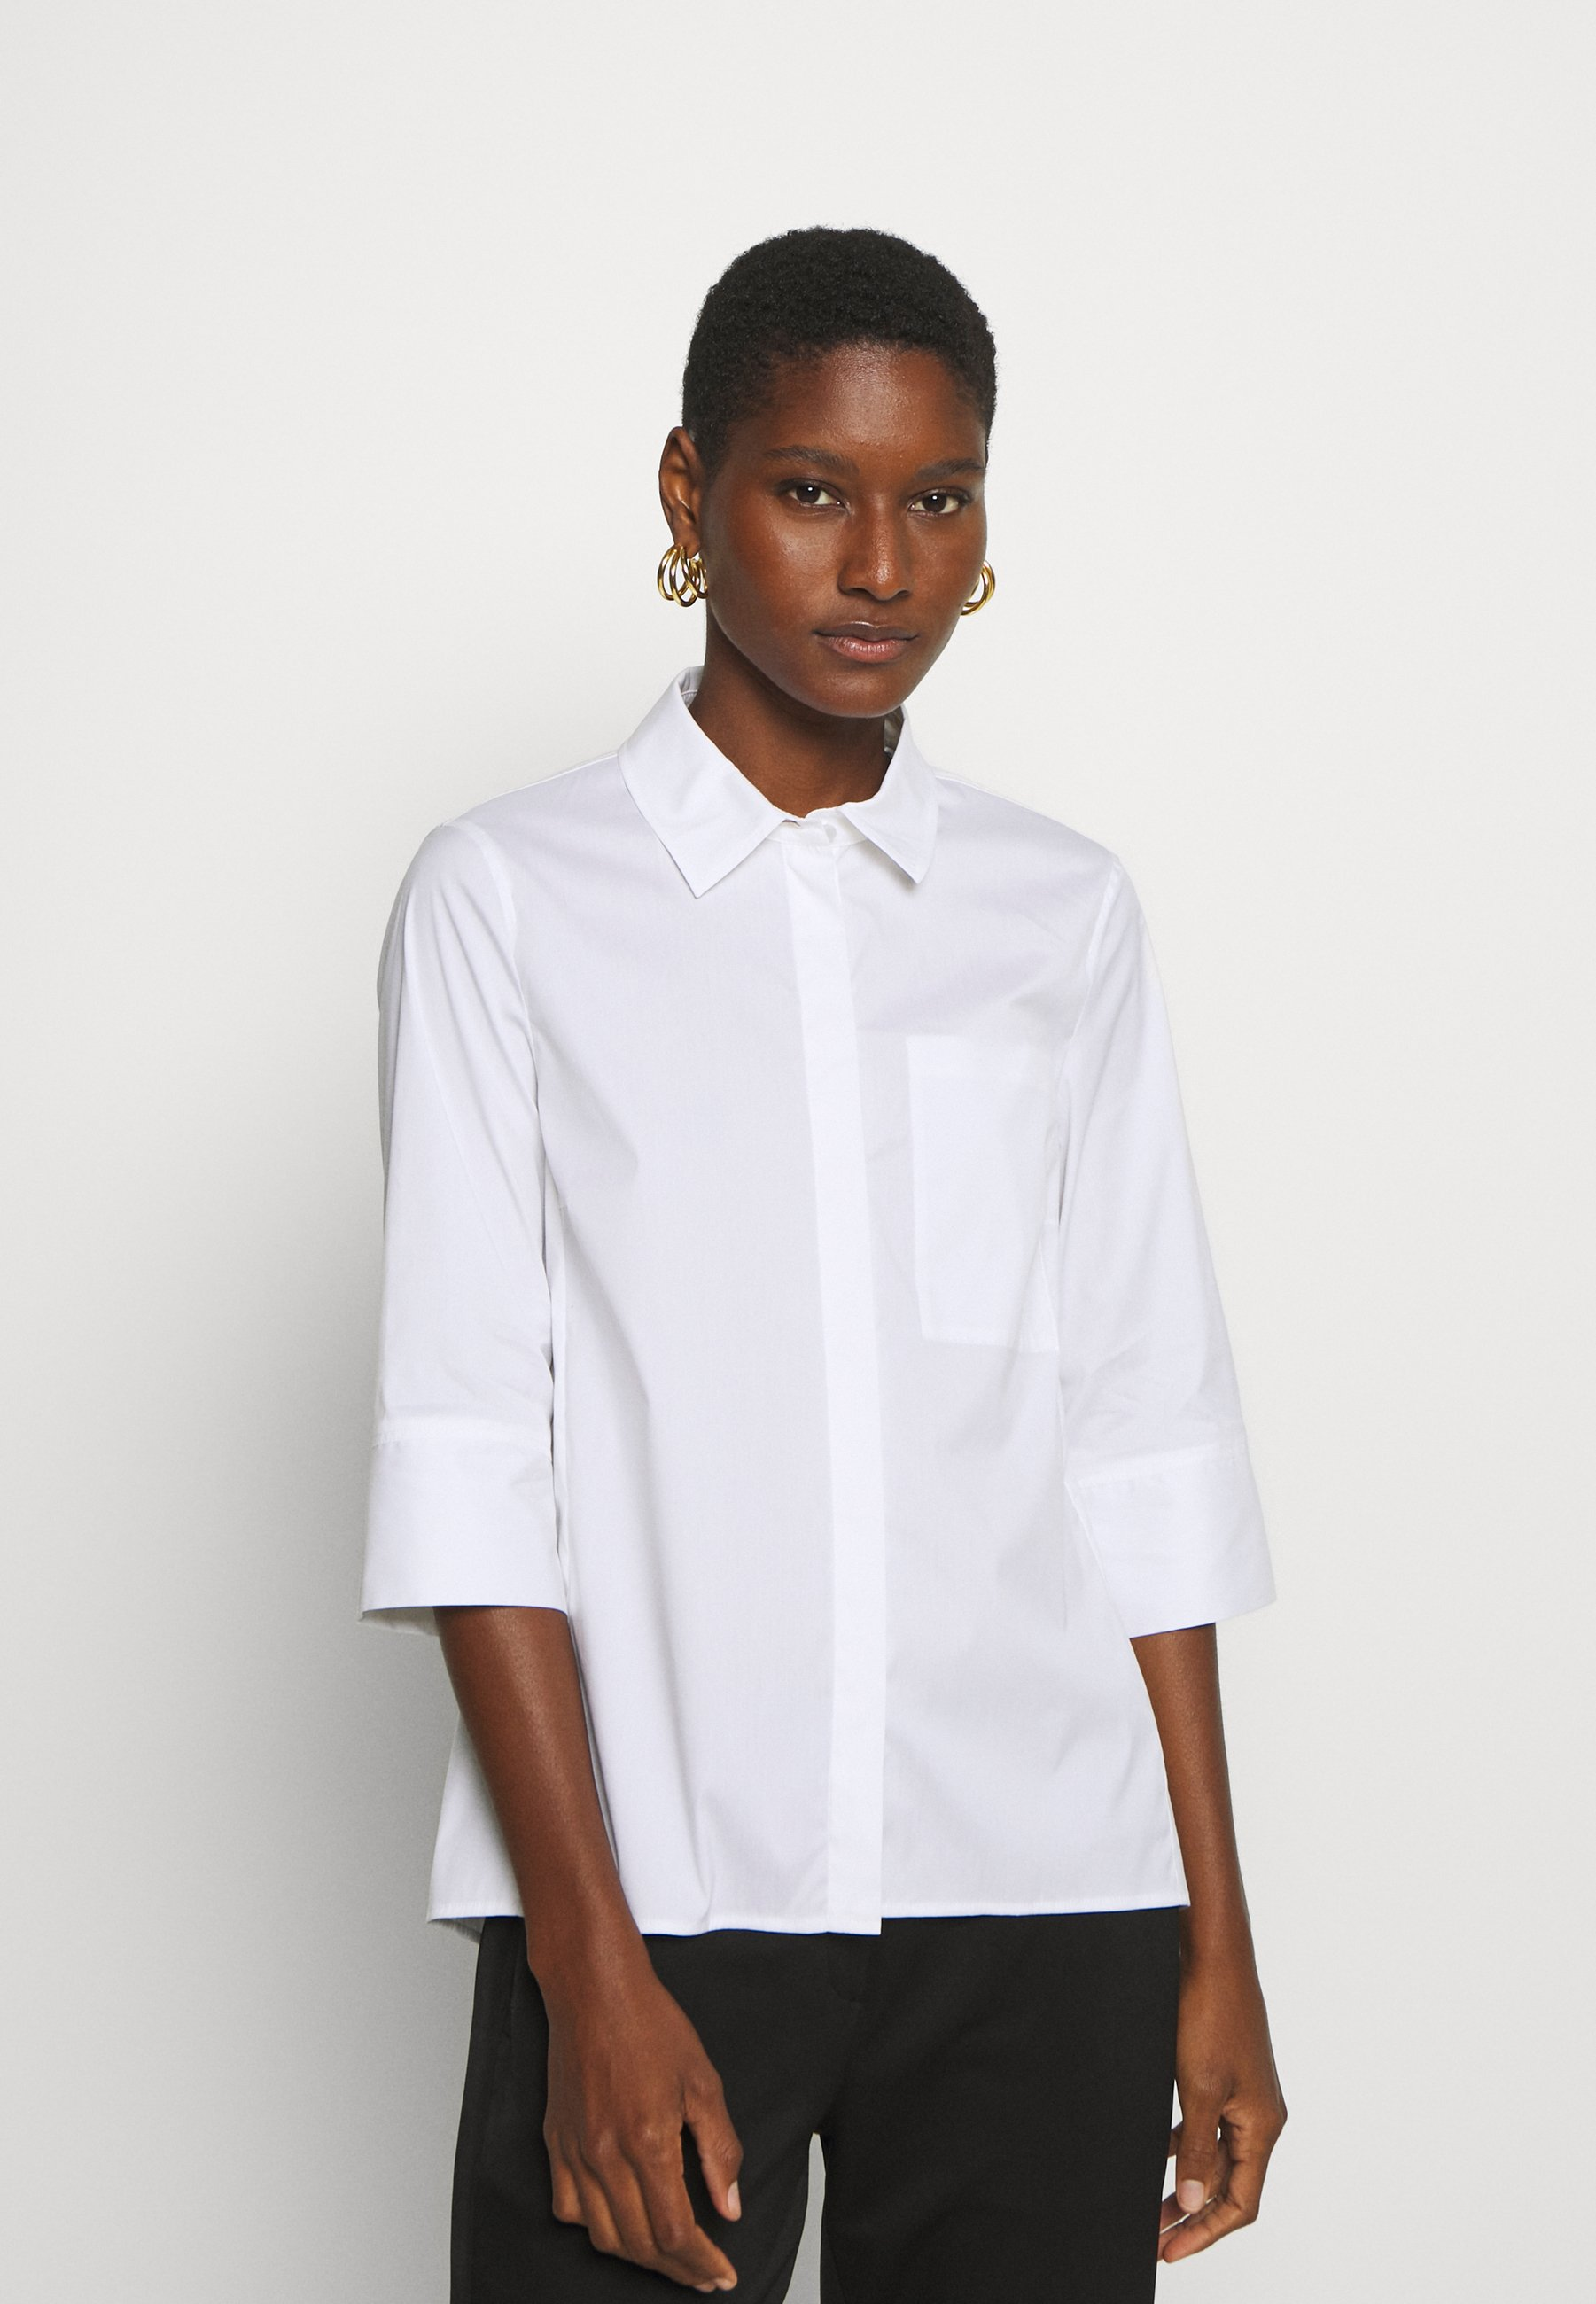 Factory Outlet Women's Clothing Marc O'Polo PURE BLOUSE CHEST POCKET Button-down blouse white zL6UZJyG4